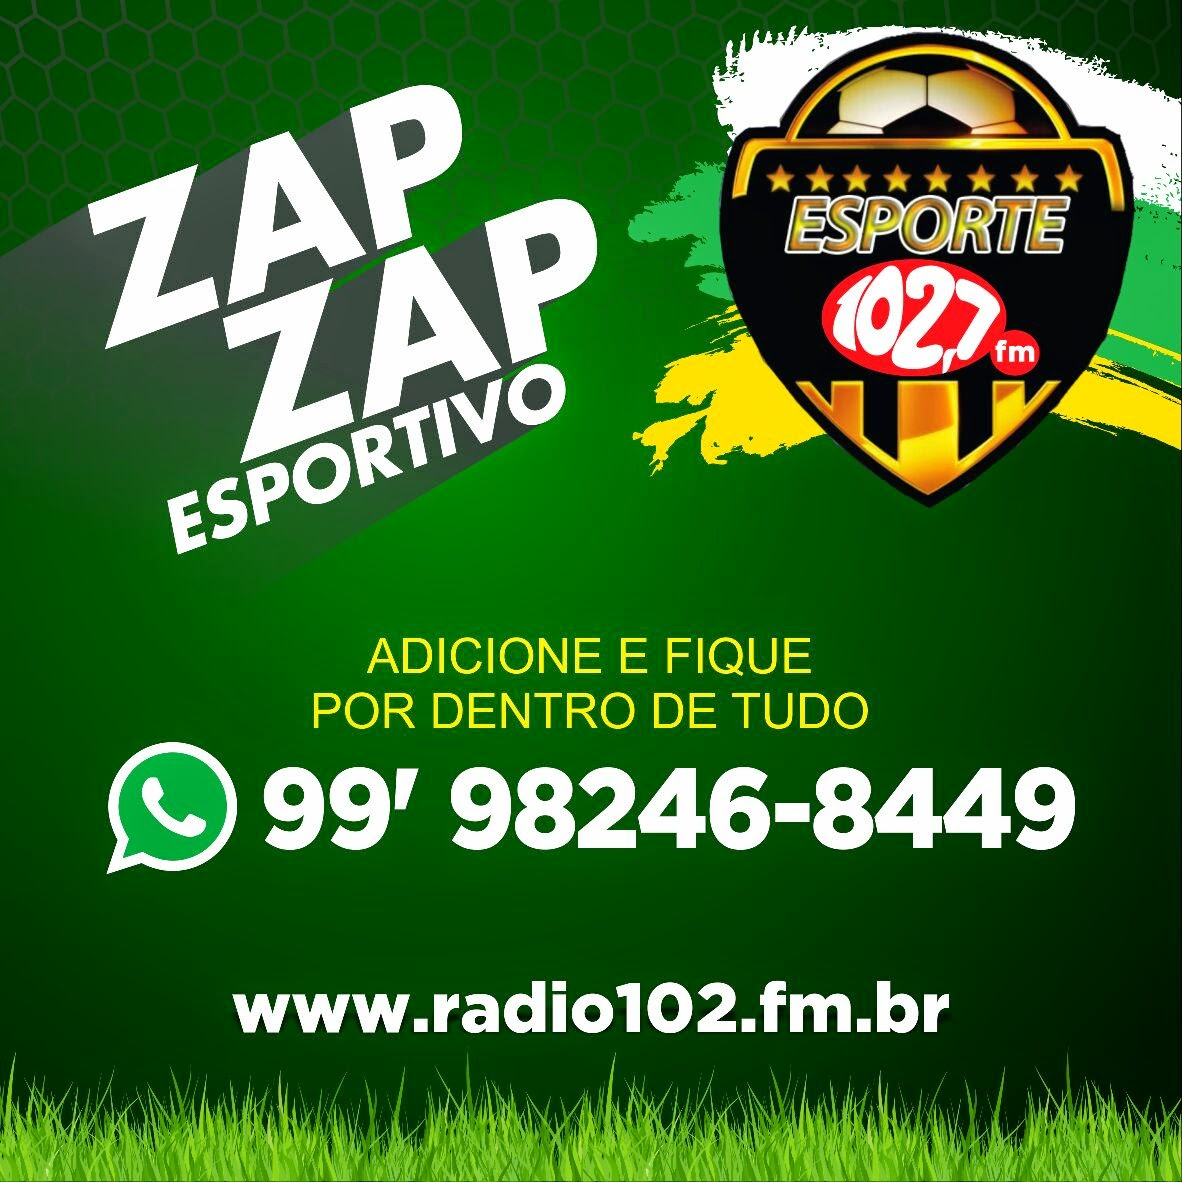 WhatsApp do Esporte 102